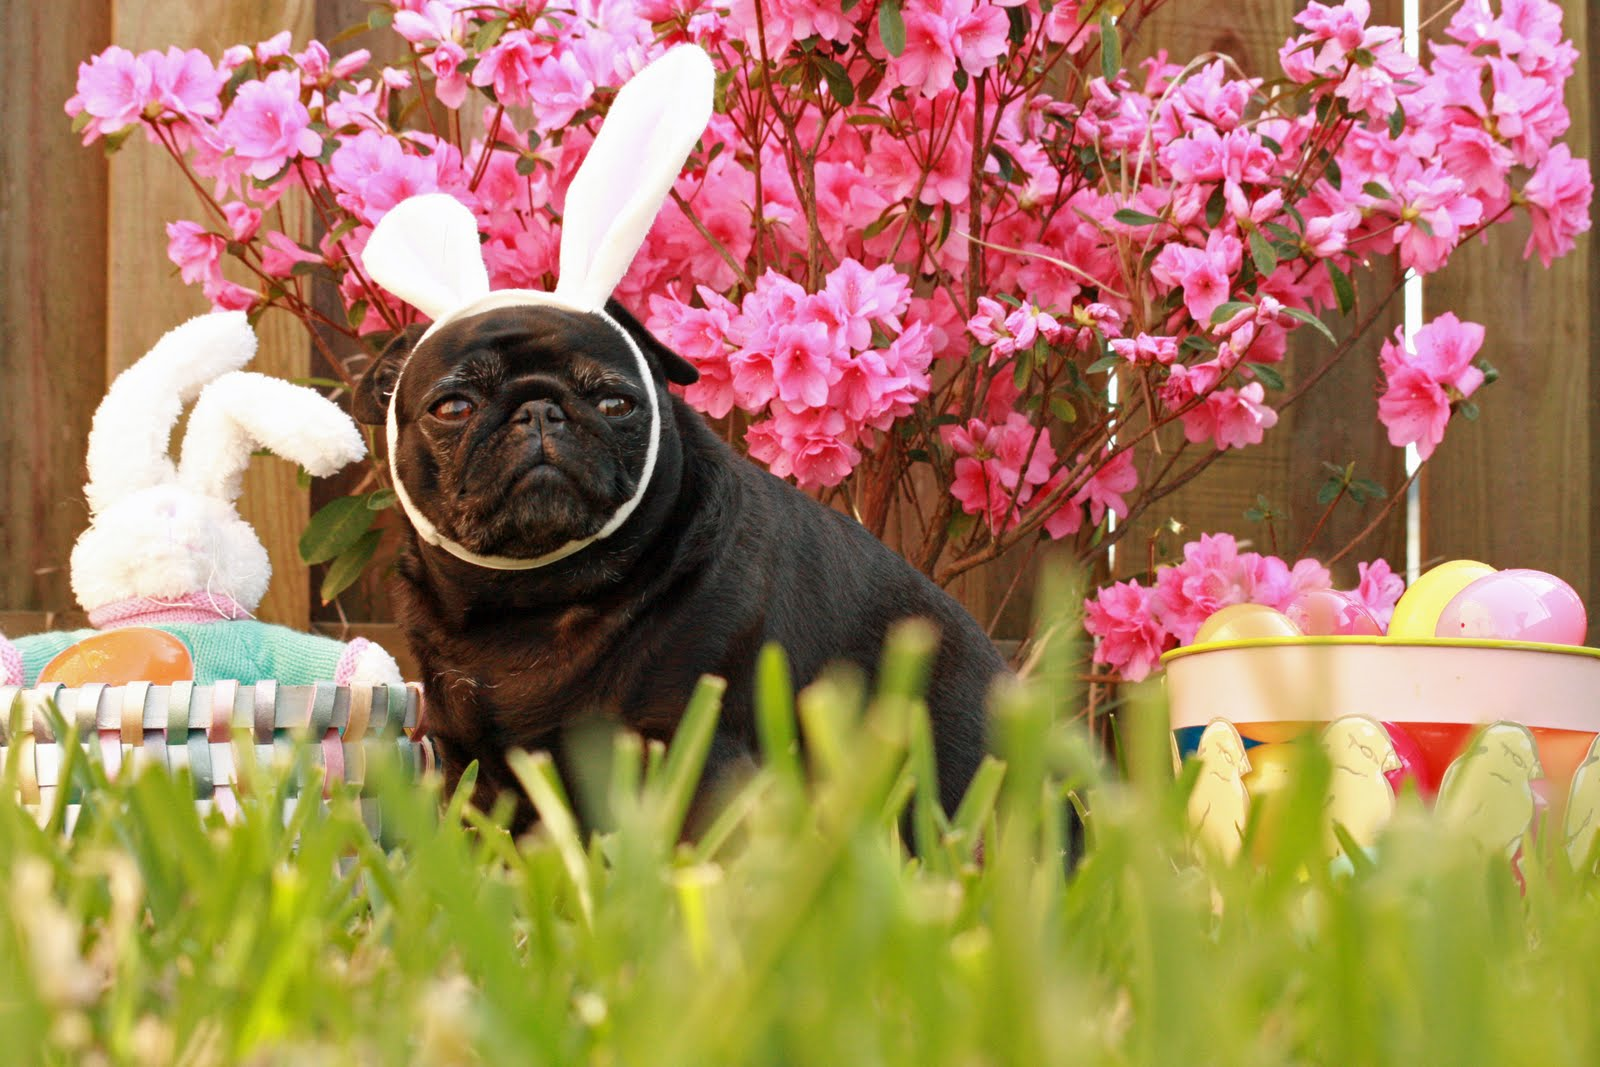 Easter Pug in the grass wallpaper